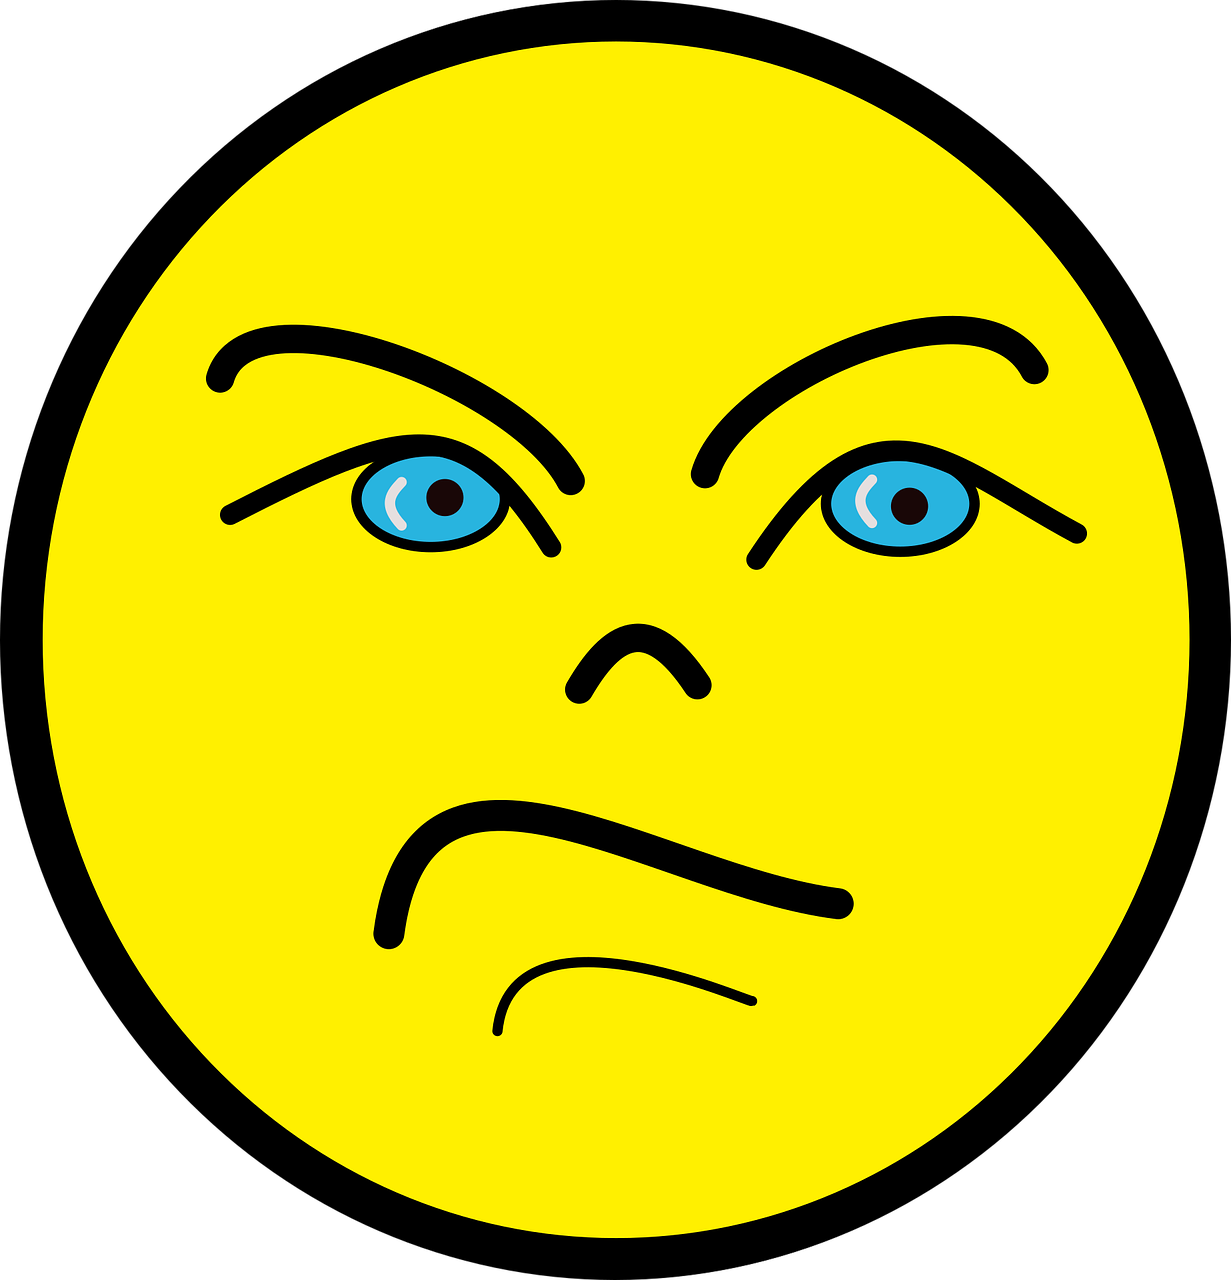 Angry Anger Disappointed Las Cute  - suethomas / Pixabay